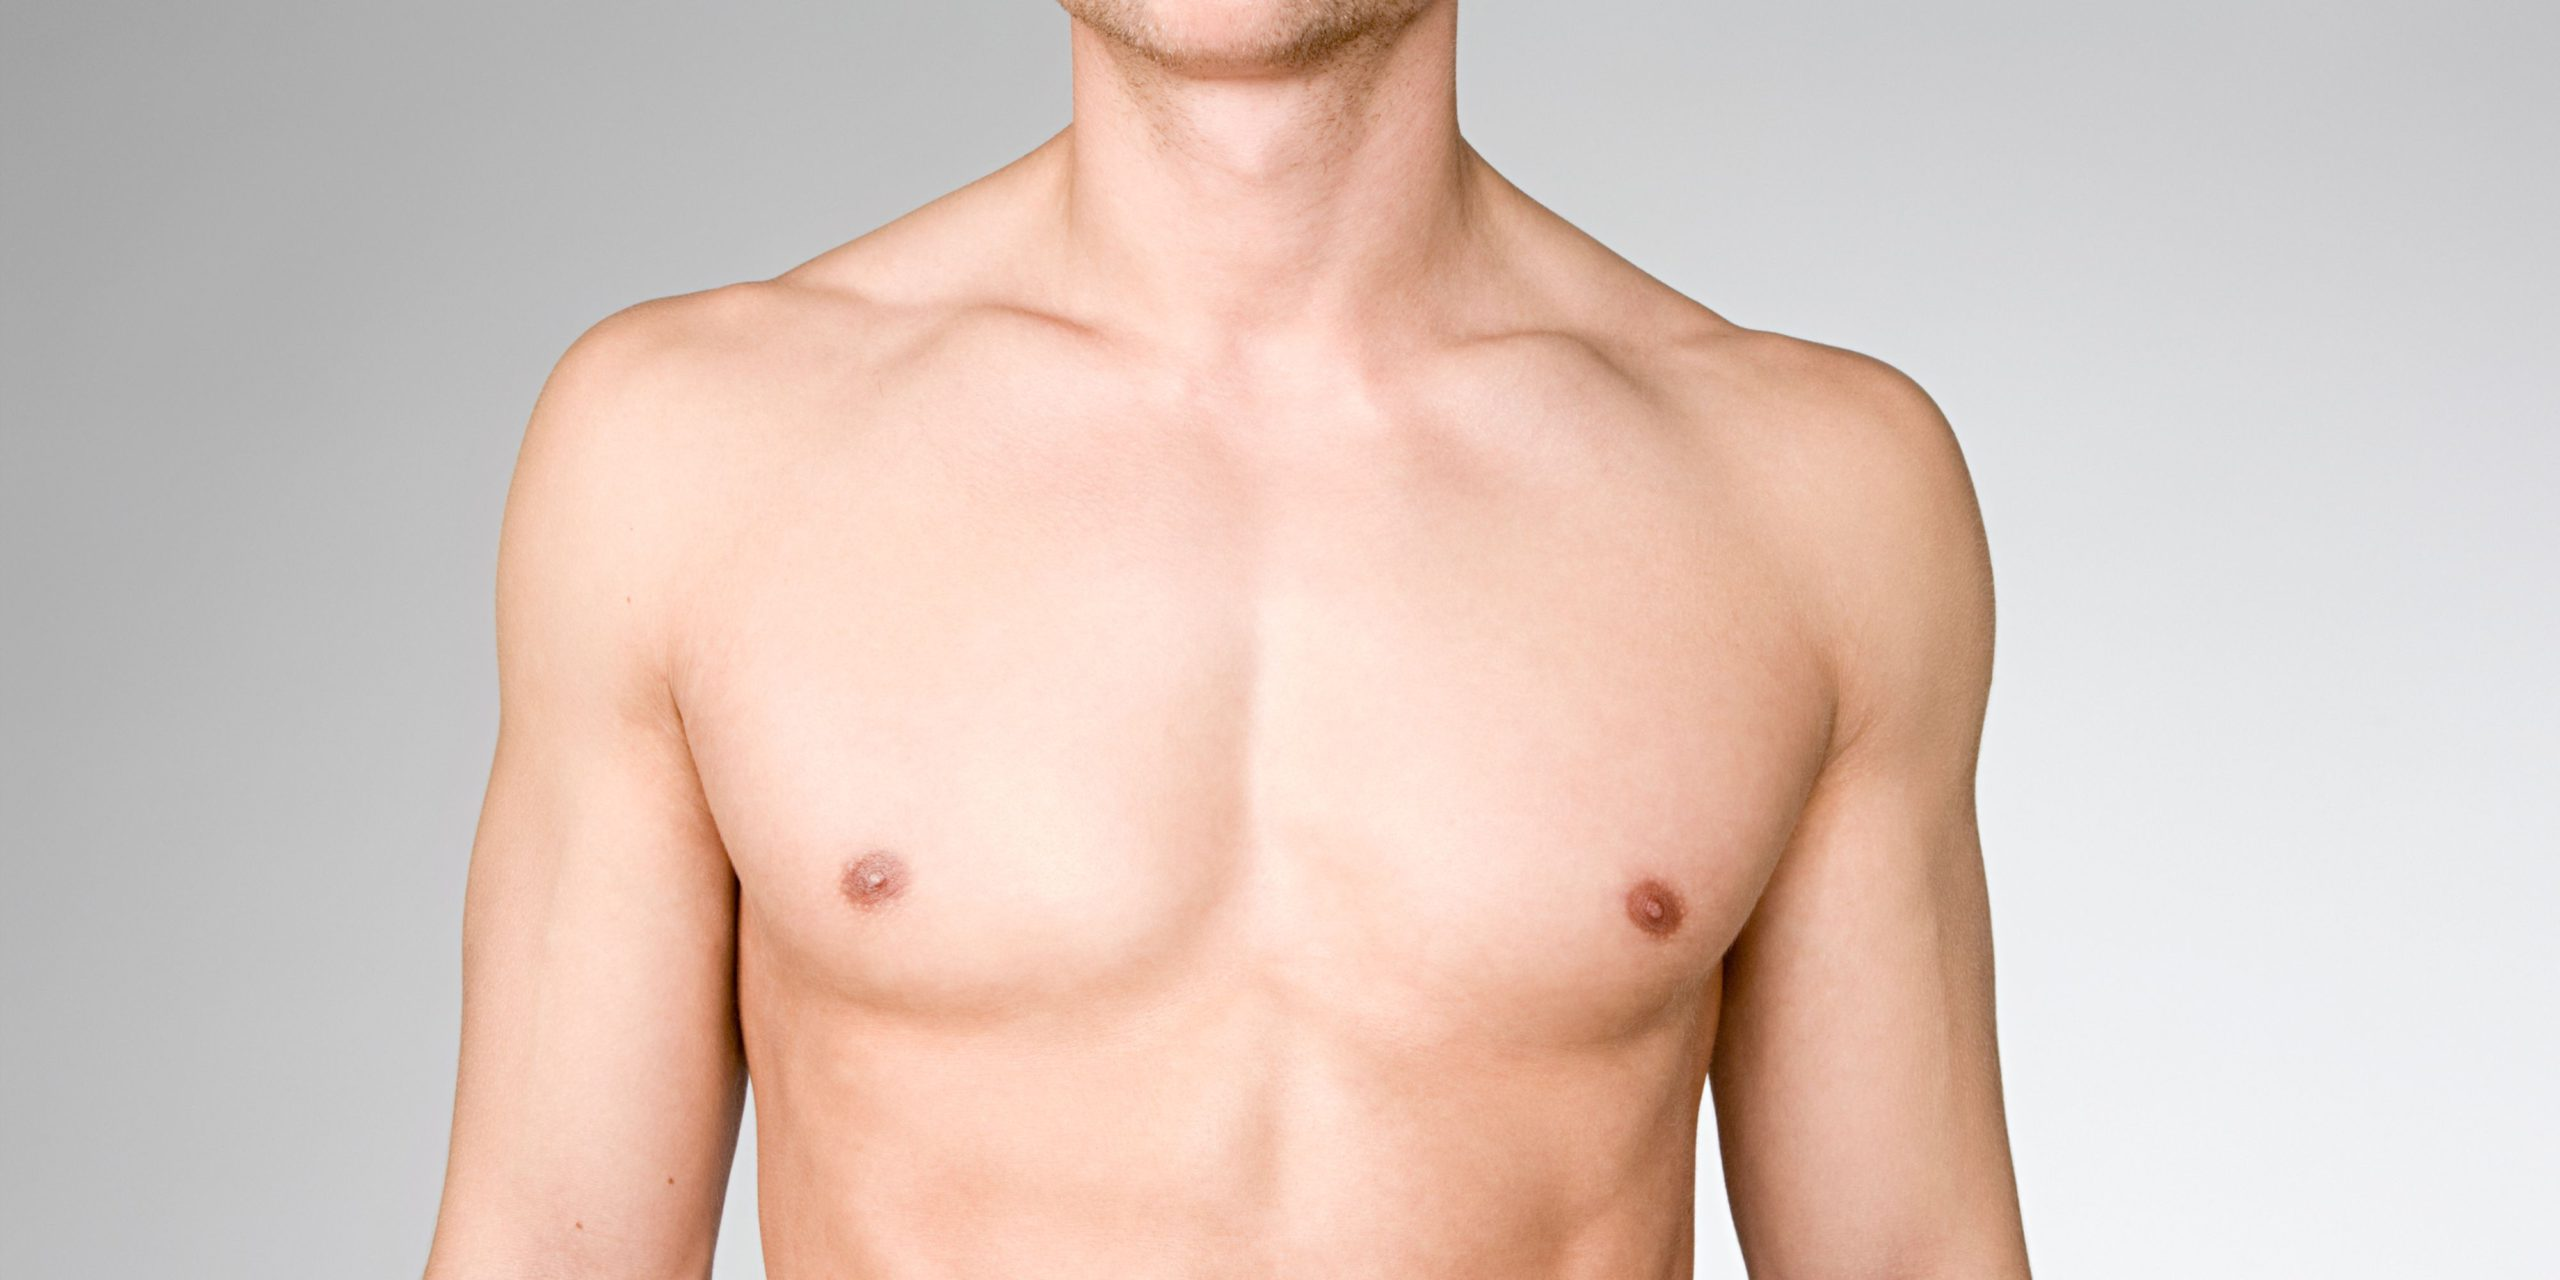 Breast cancer in males 2020